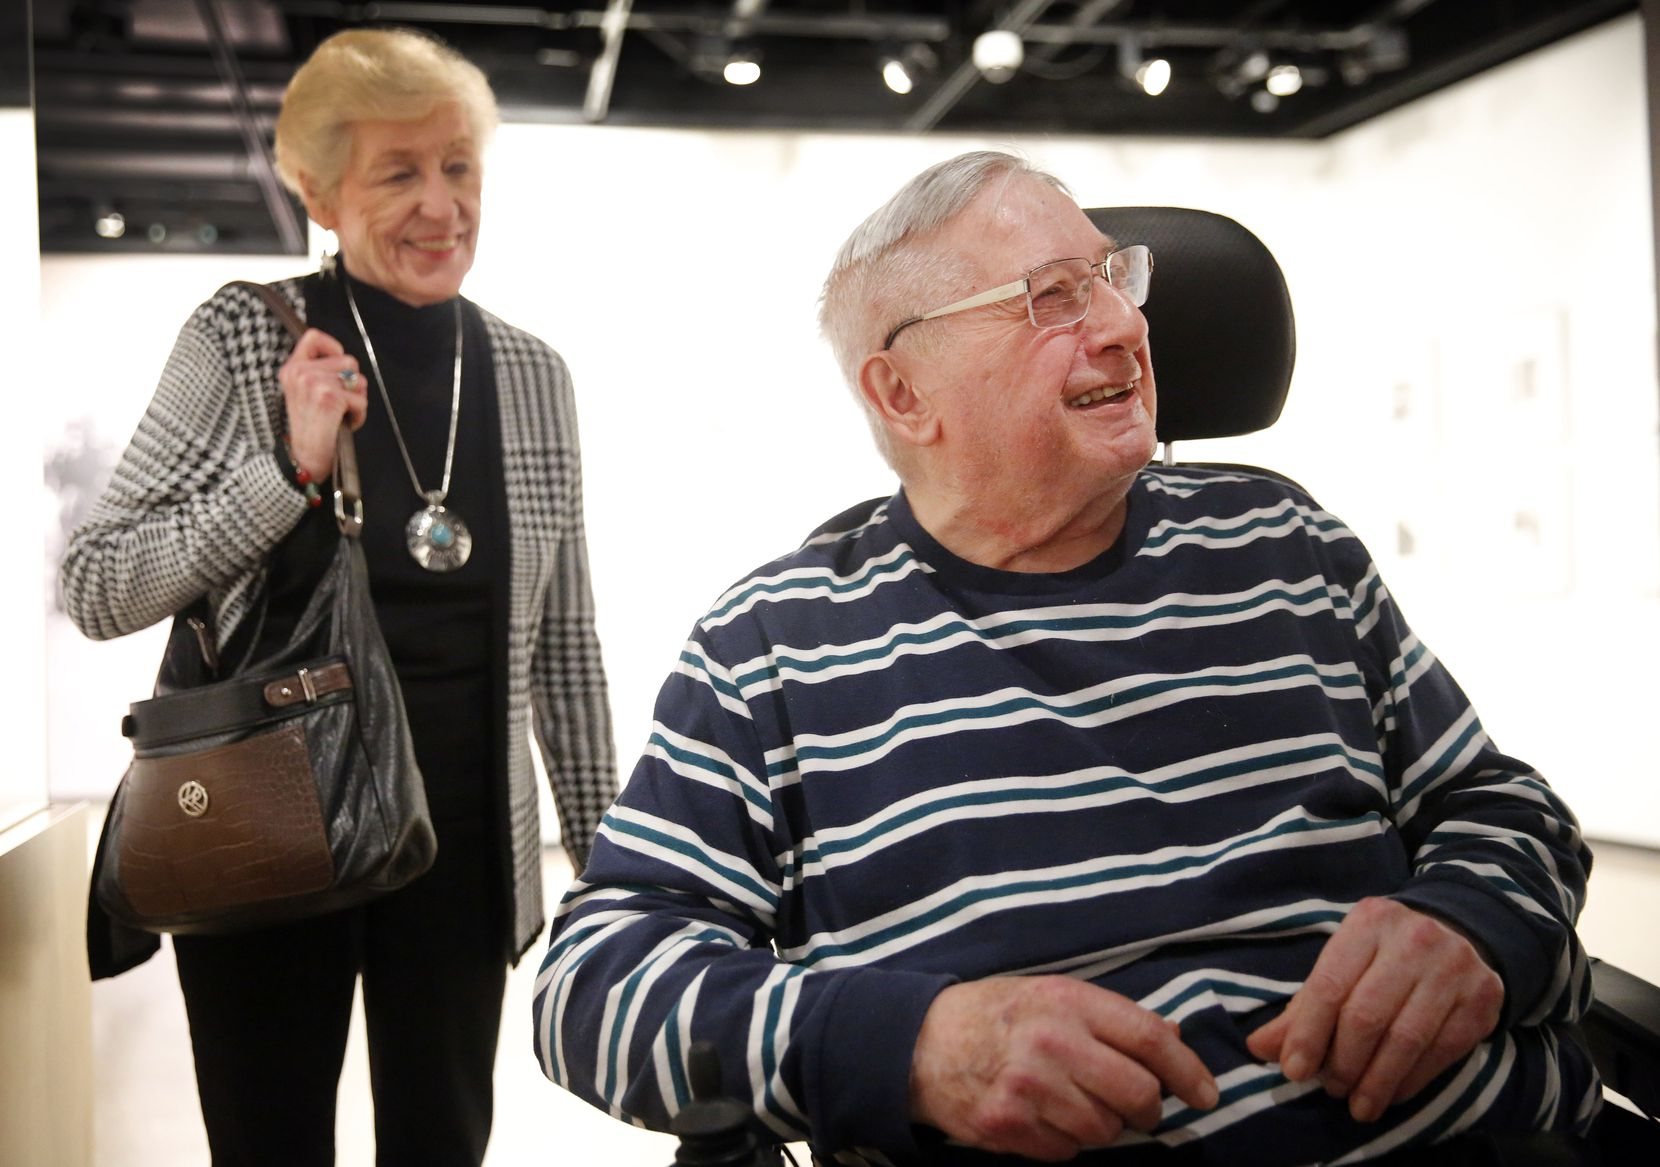 Sid Miller had never before spoken on the record about his work at the Justice Department, until his visit Wednesday to the Dallas Holocaust and Human Rights Museum with old friends, including, at left, Jean Schobert.